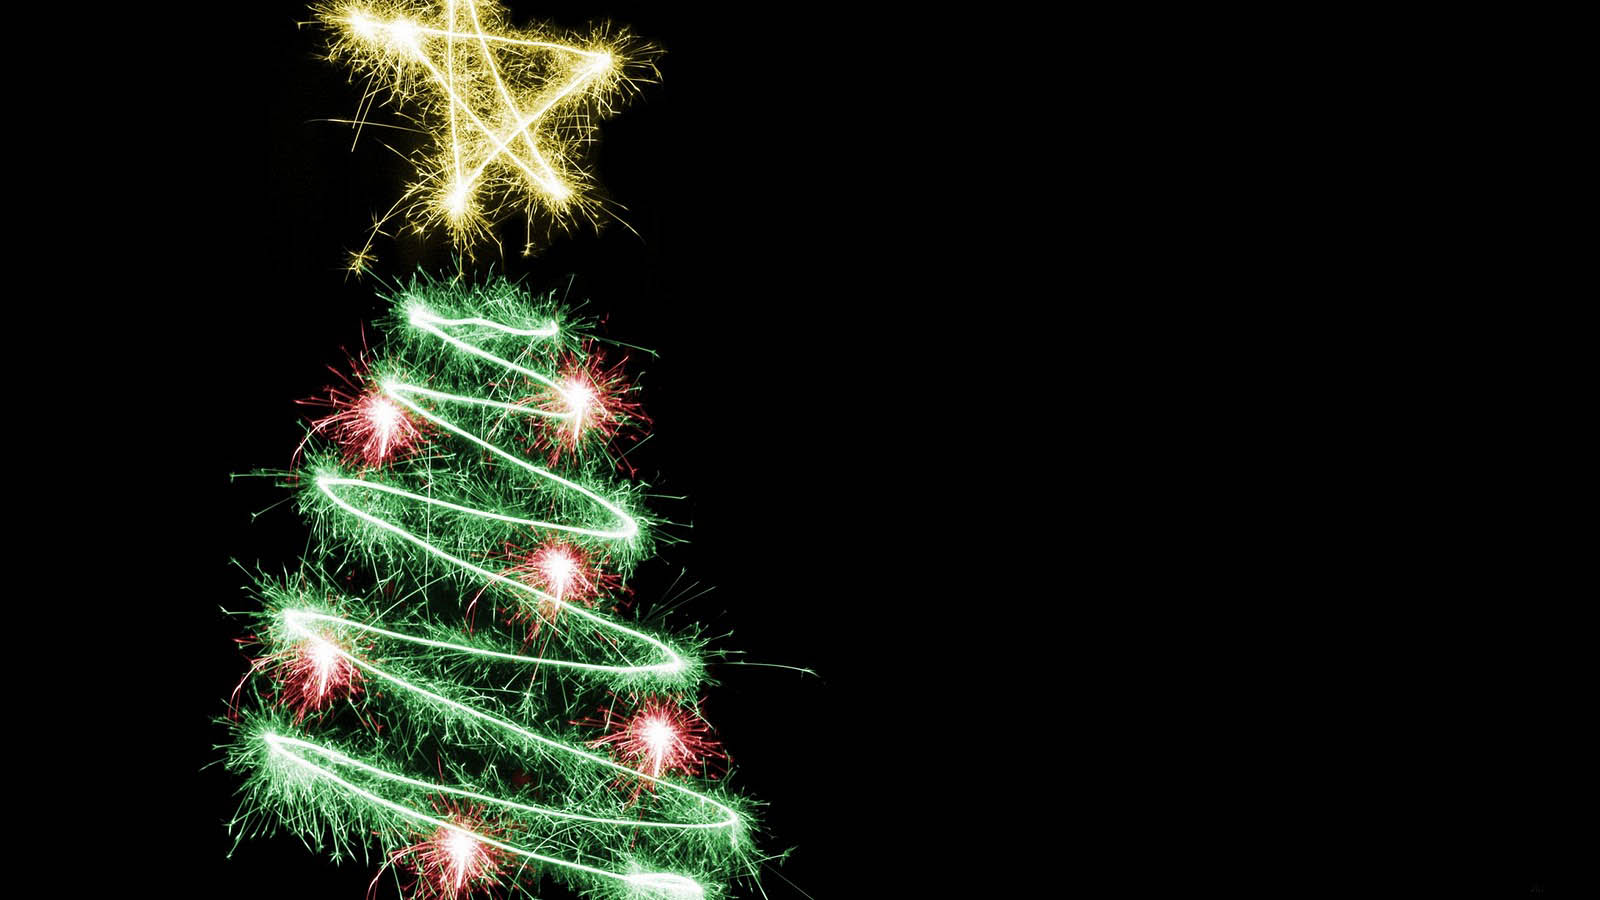 http://1.bp.blogspot.com/-BKQe4yESq3Q/TsdN6UqOyrI/AAAAAAAABnc/hcFuHINs2eE/s1600/Christmas-lights-desktop-Wallpapers-HD-photo-images-5.jpg